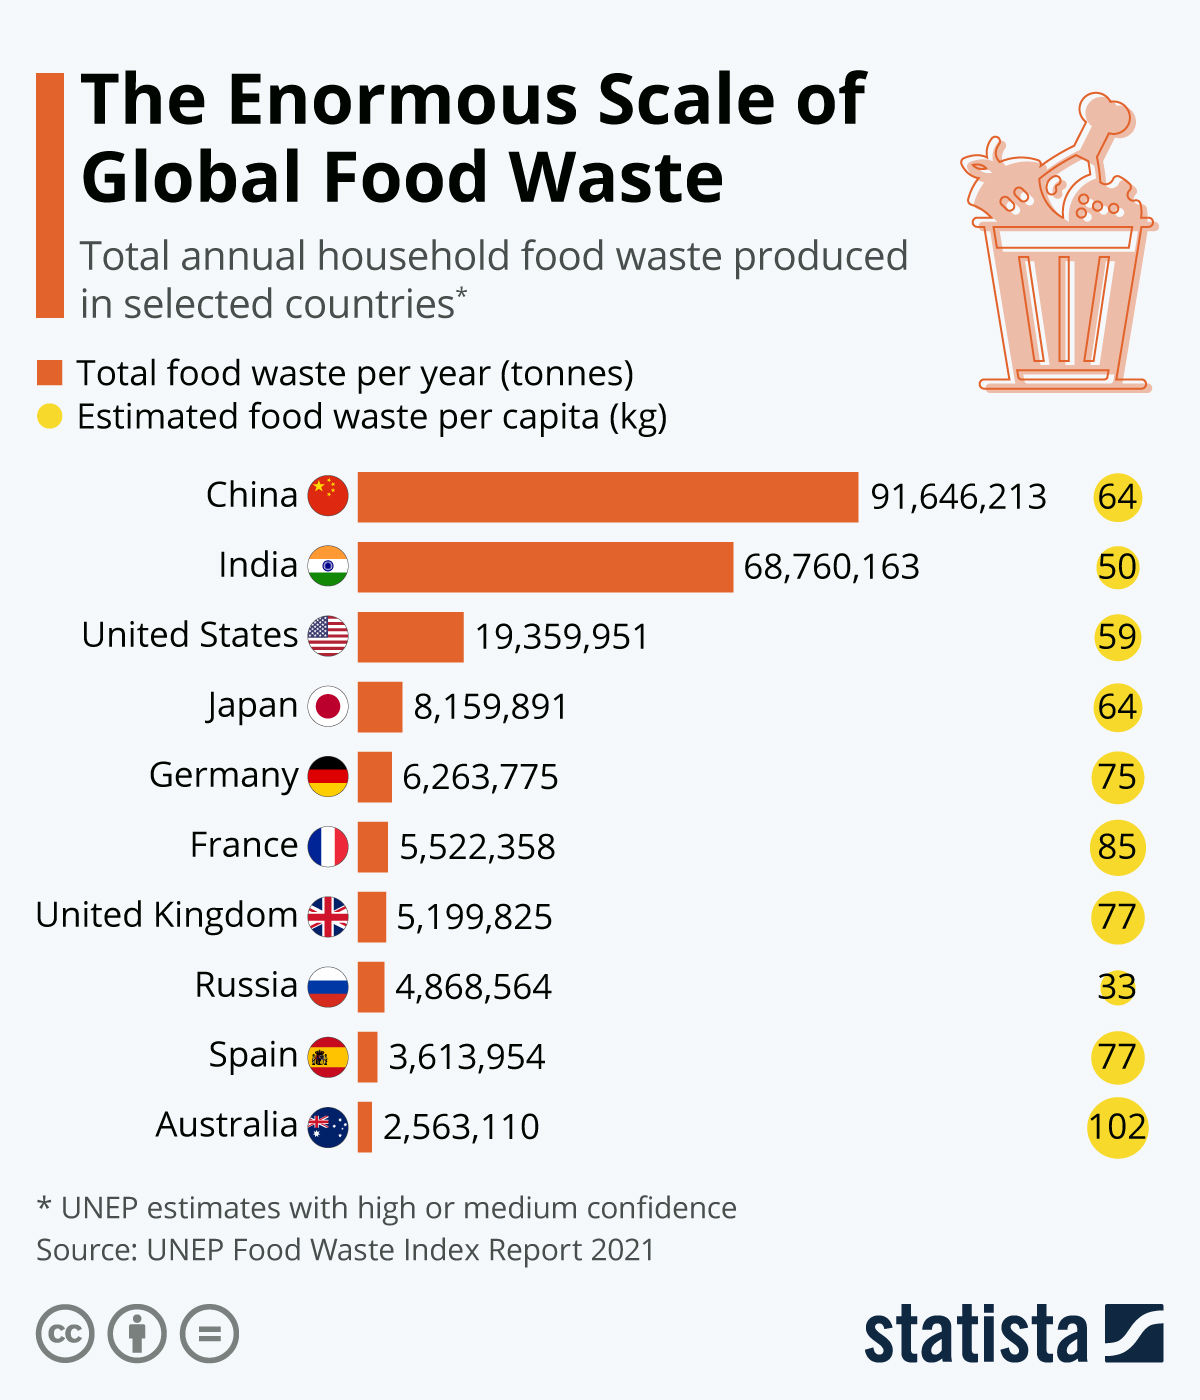 Food waste throughout the world